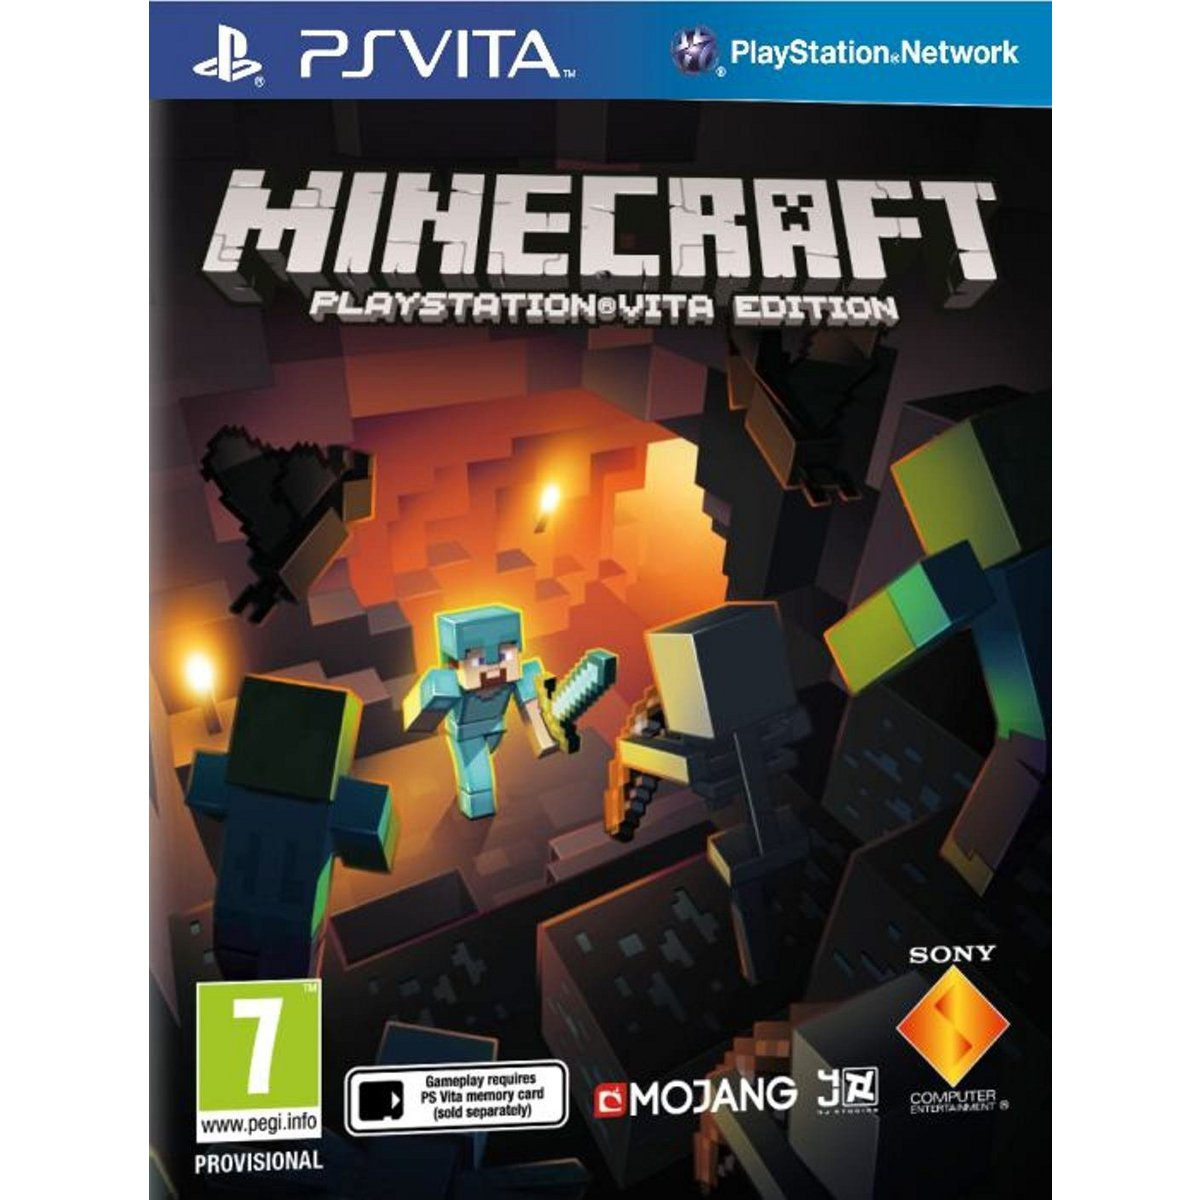 minecraft ps vita 0711719438212 achat vente jeux ps vita sur. Black Bedroom Furniture Sets. Home Design Ideas